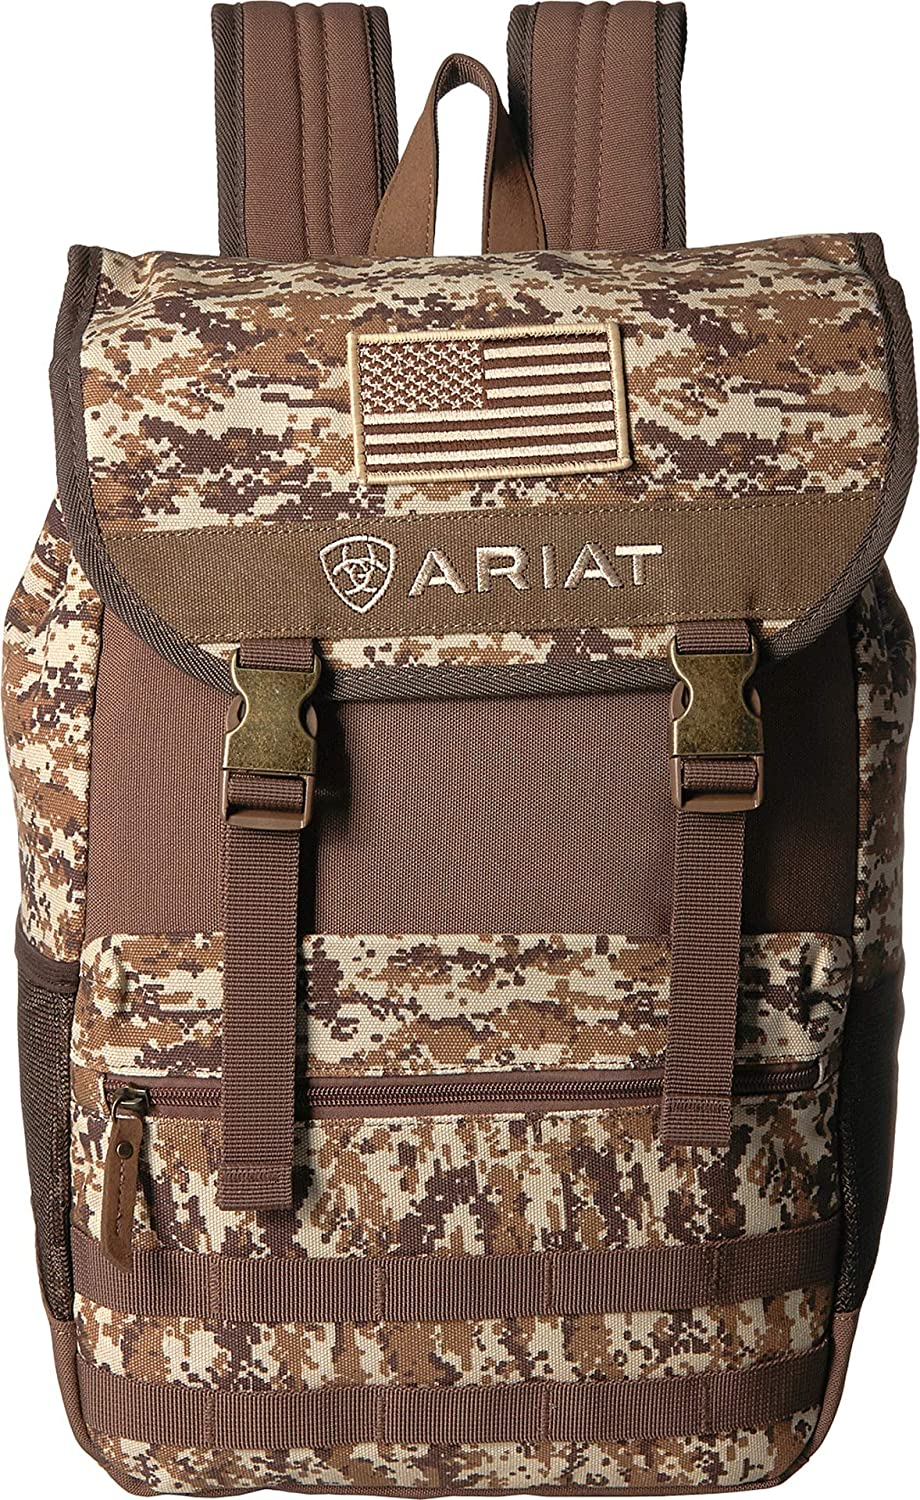 Ariat Unisex Sport Patriot Rucksack Backpack